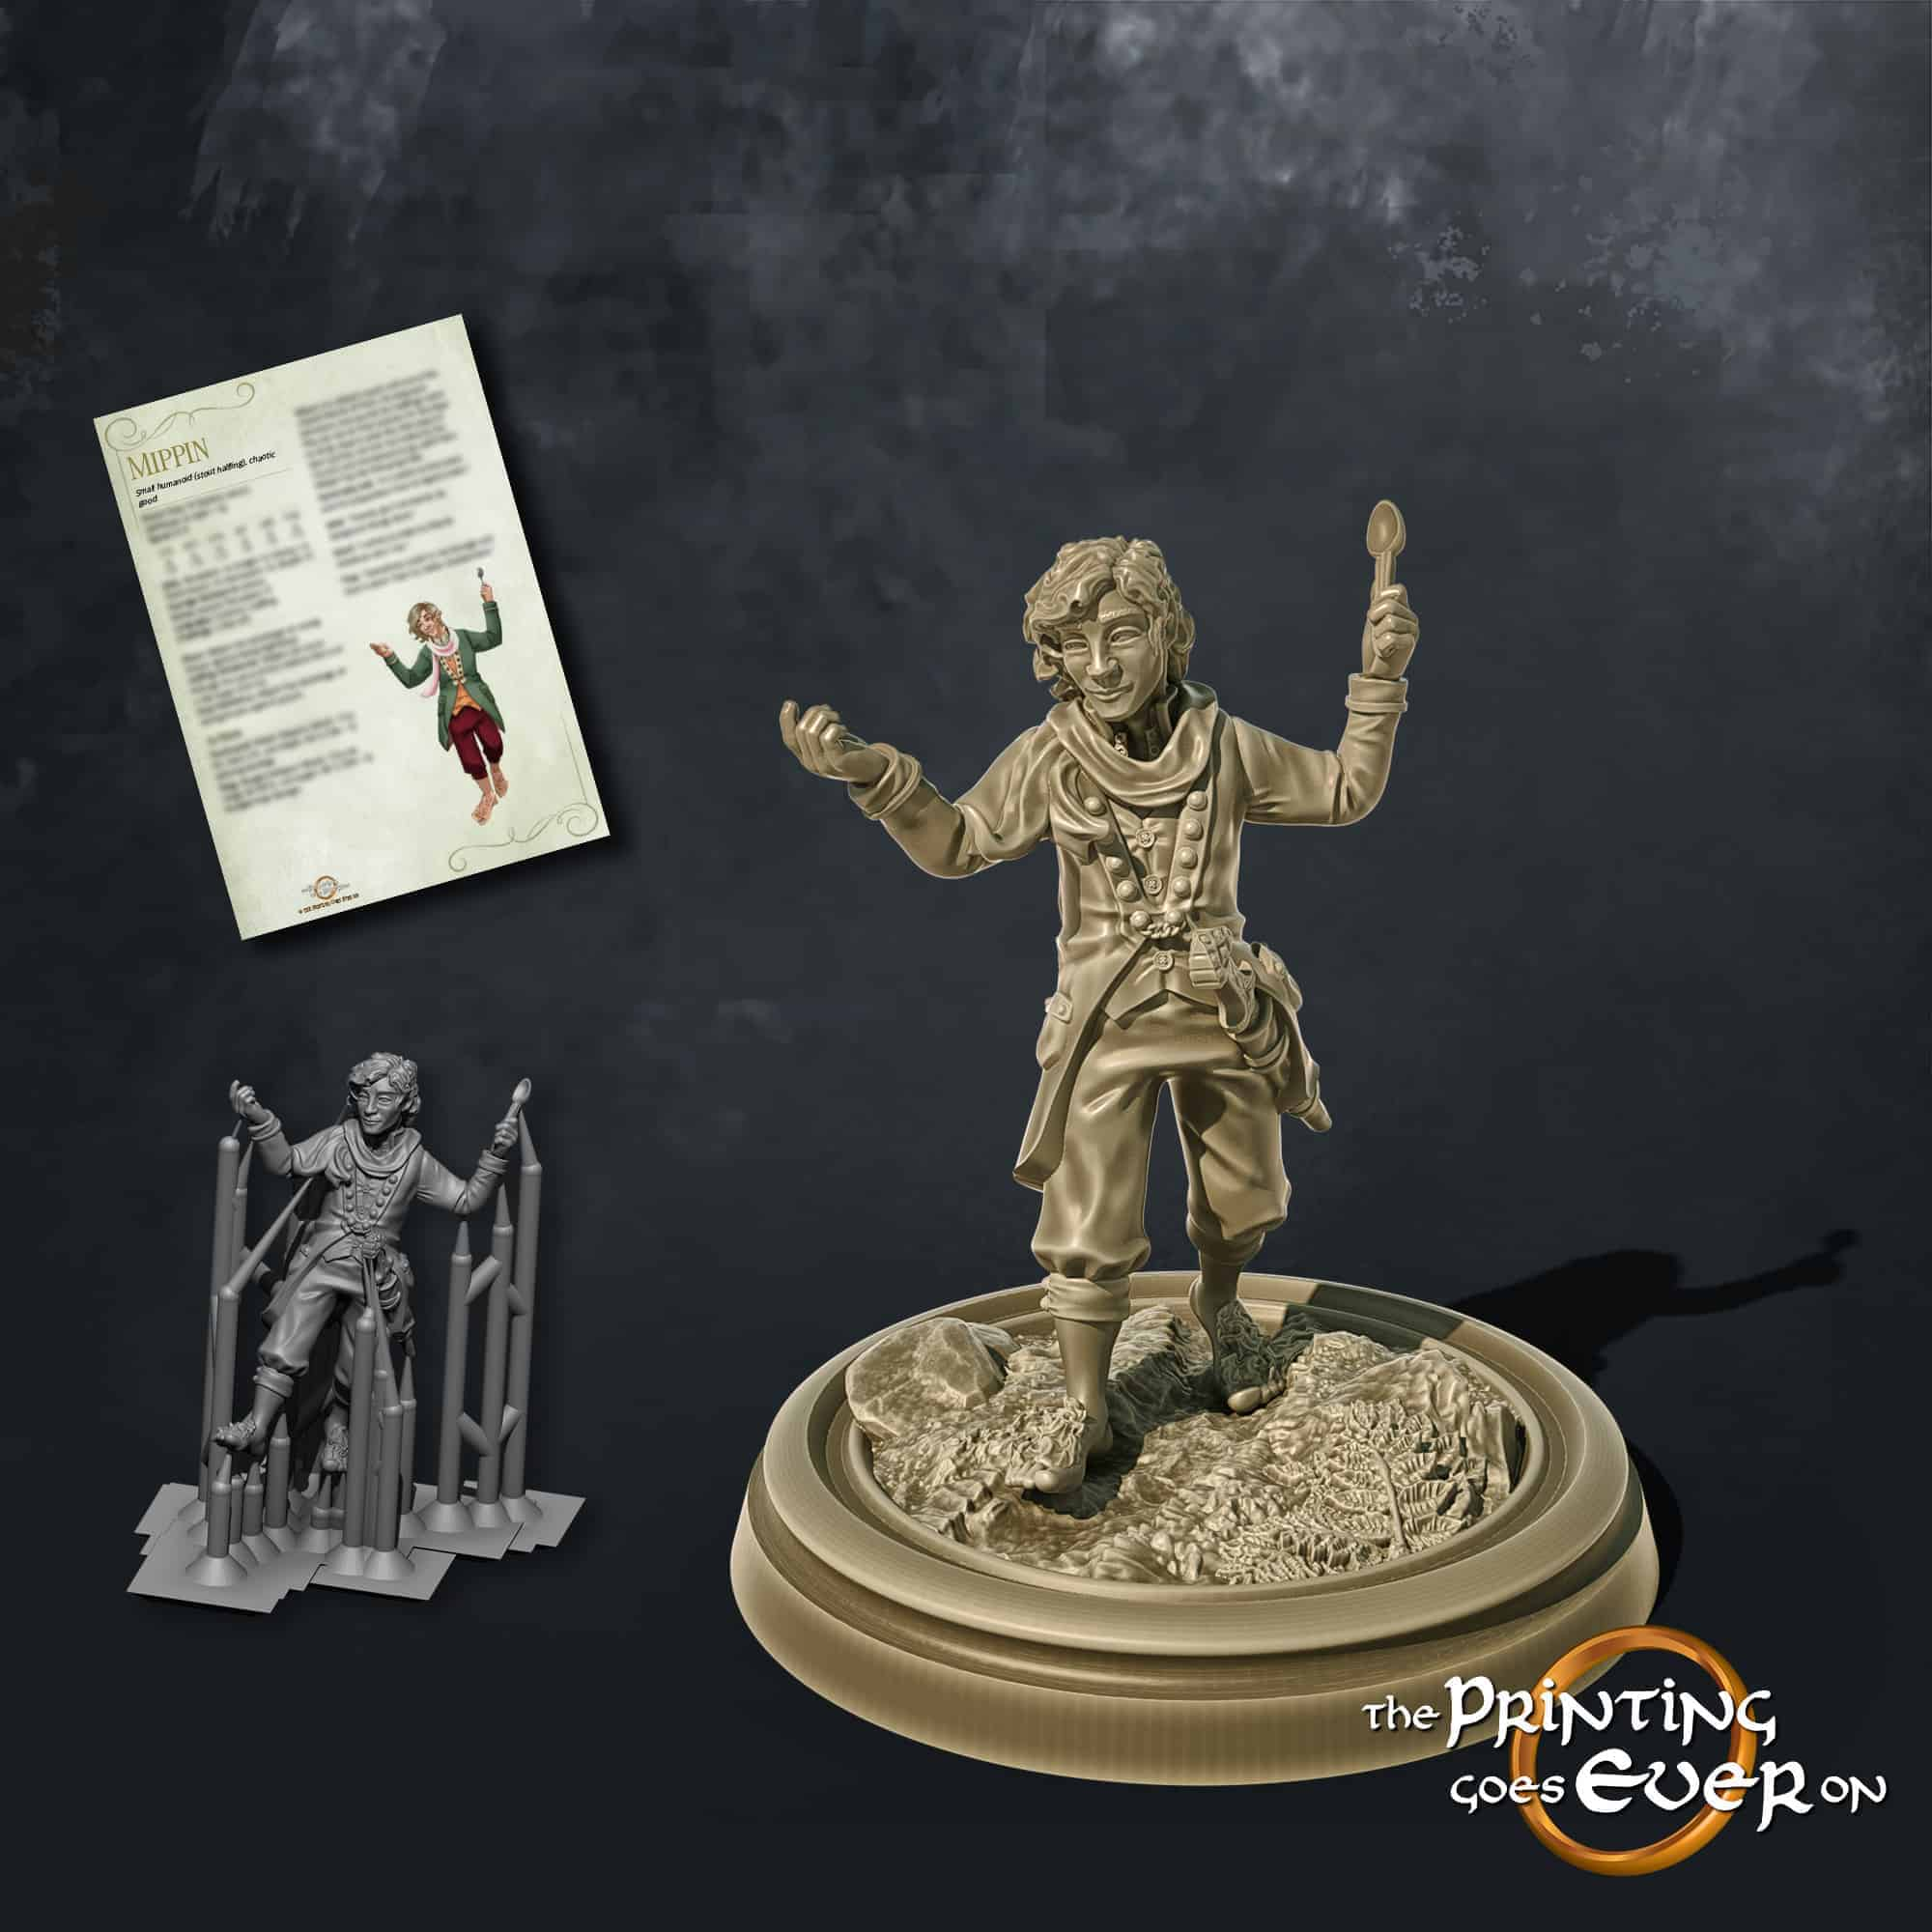 mippin halfling adventurer brandishing a spoon 3d printable tabletop miniature from the printing goes ever on patreon welcome trove